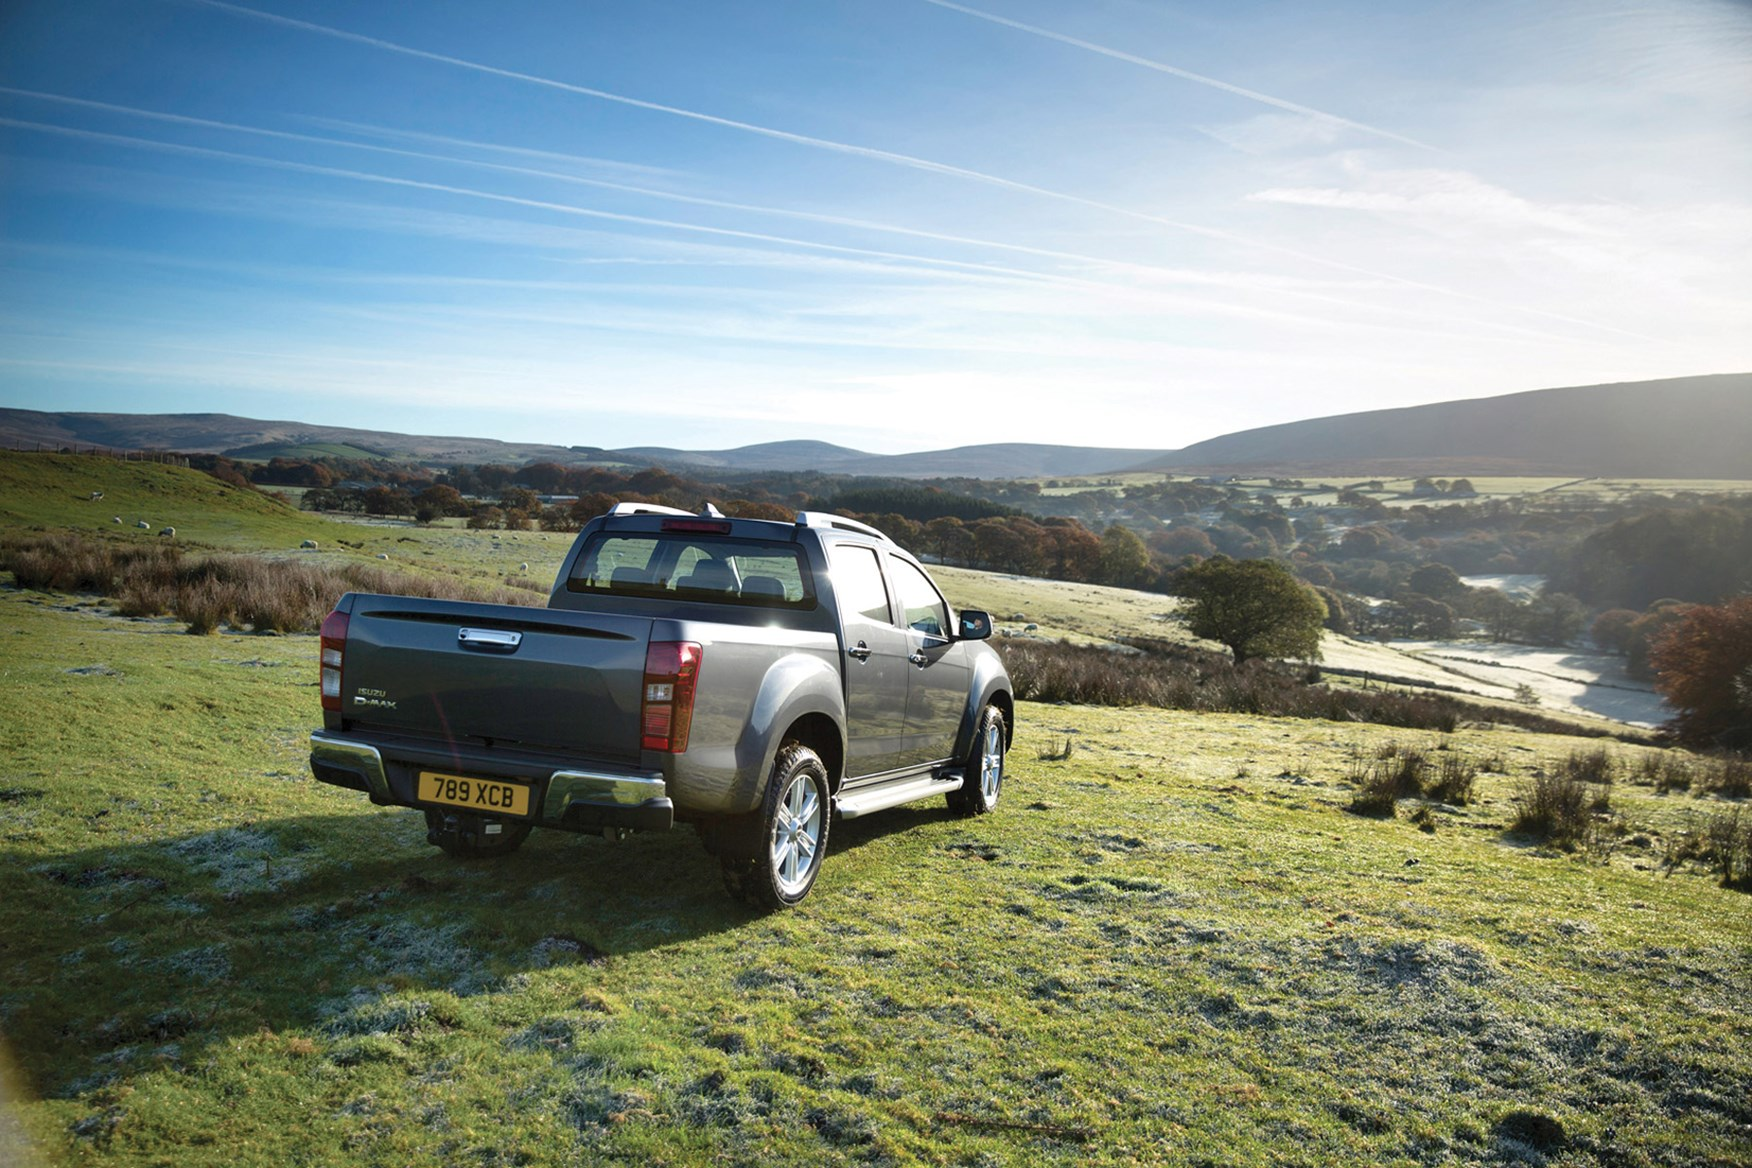 Isuzu D-Max full review on Parkers Vans - rear exterior